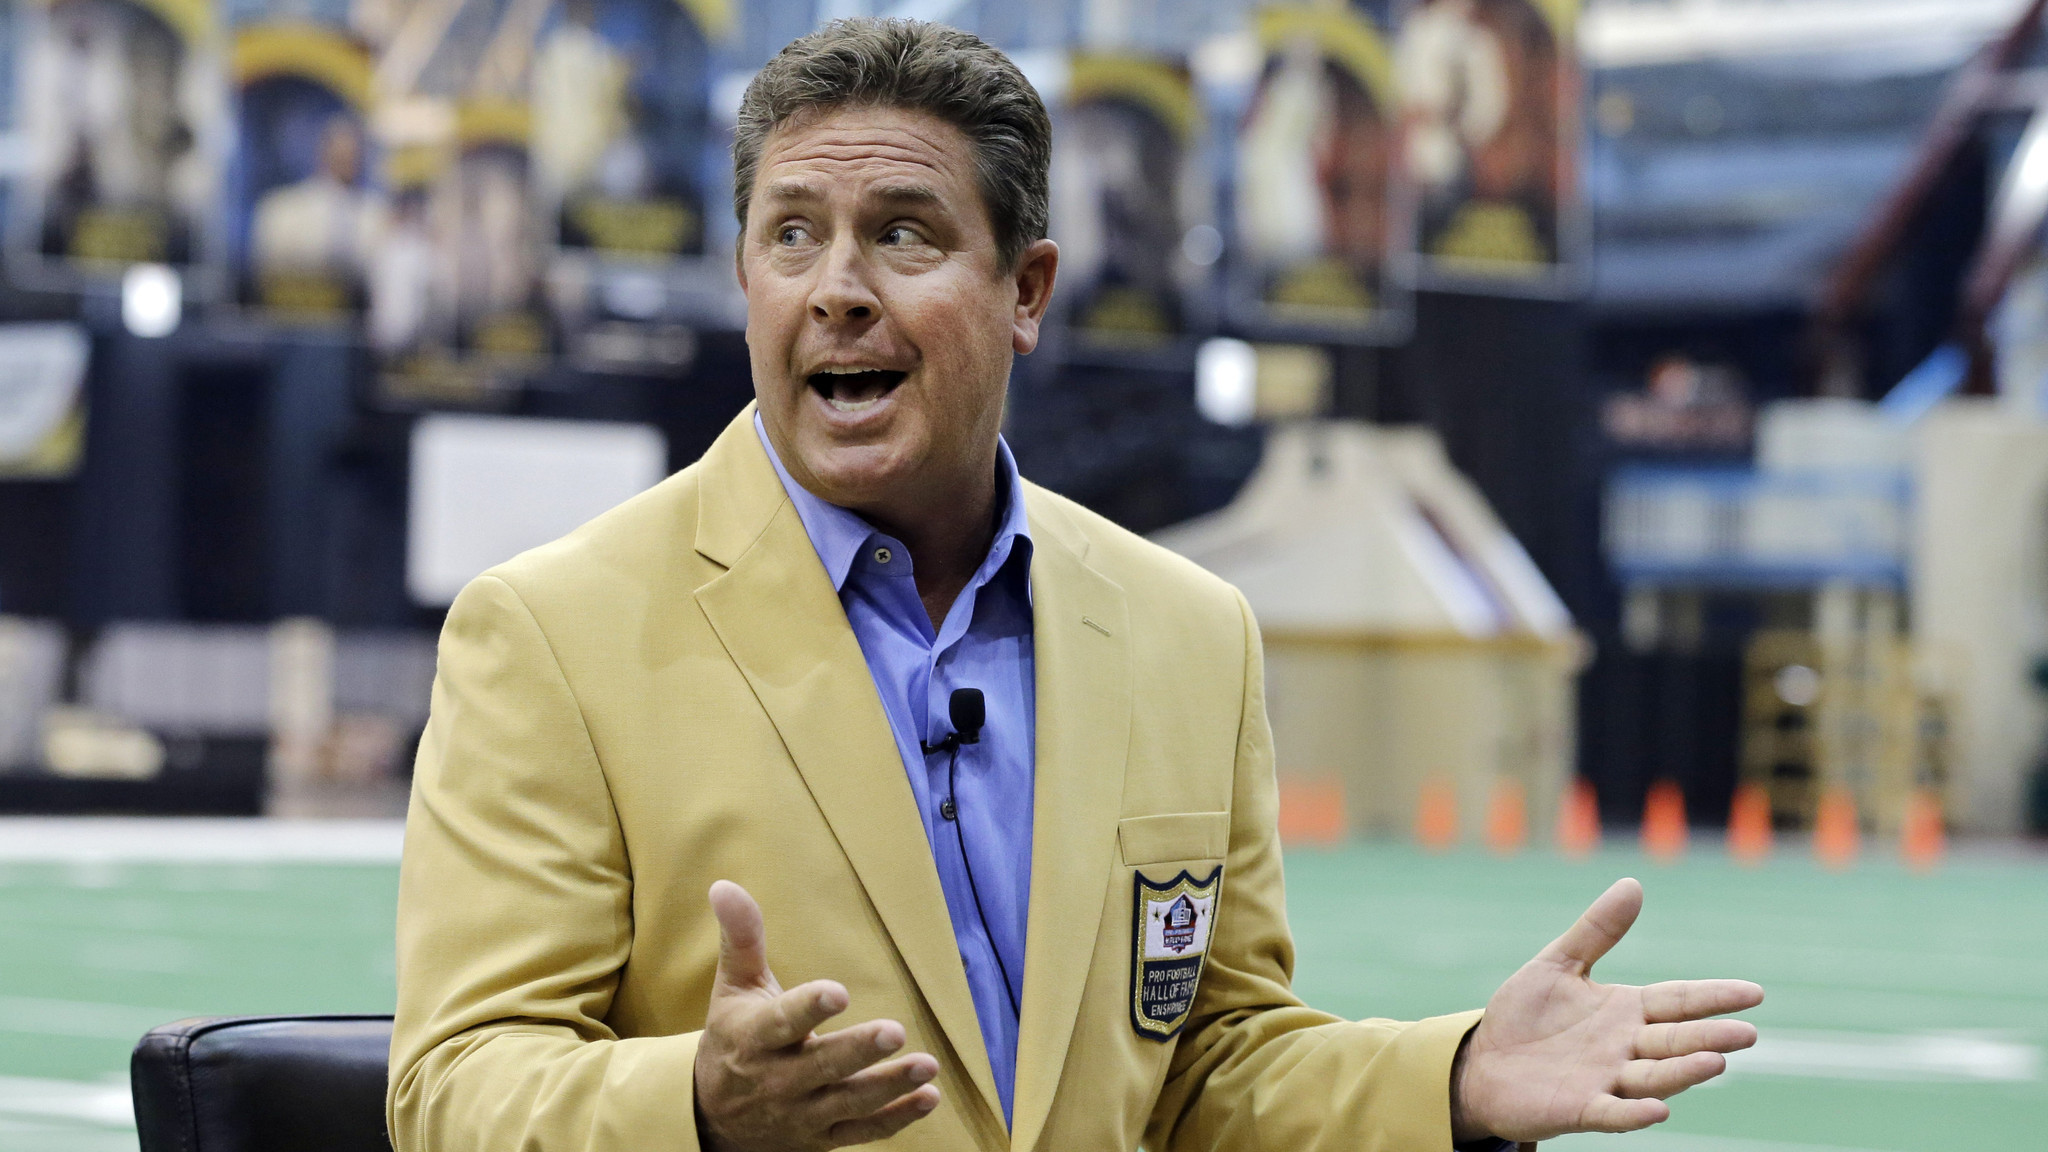 Dan Marino sued the NFL over concussions last week, according to ...